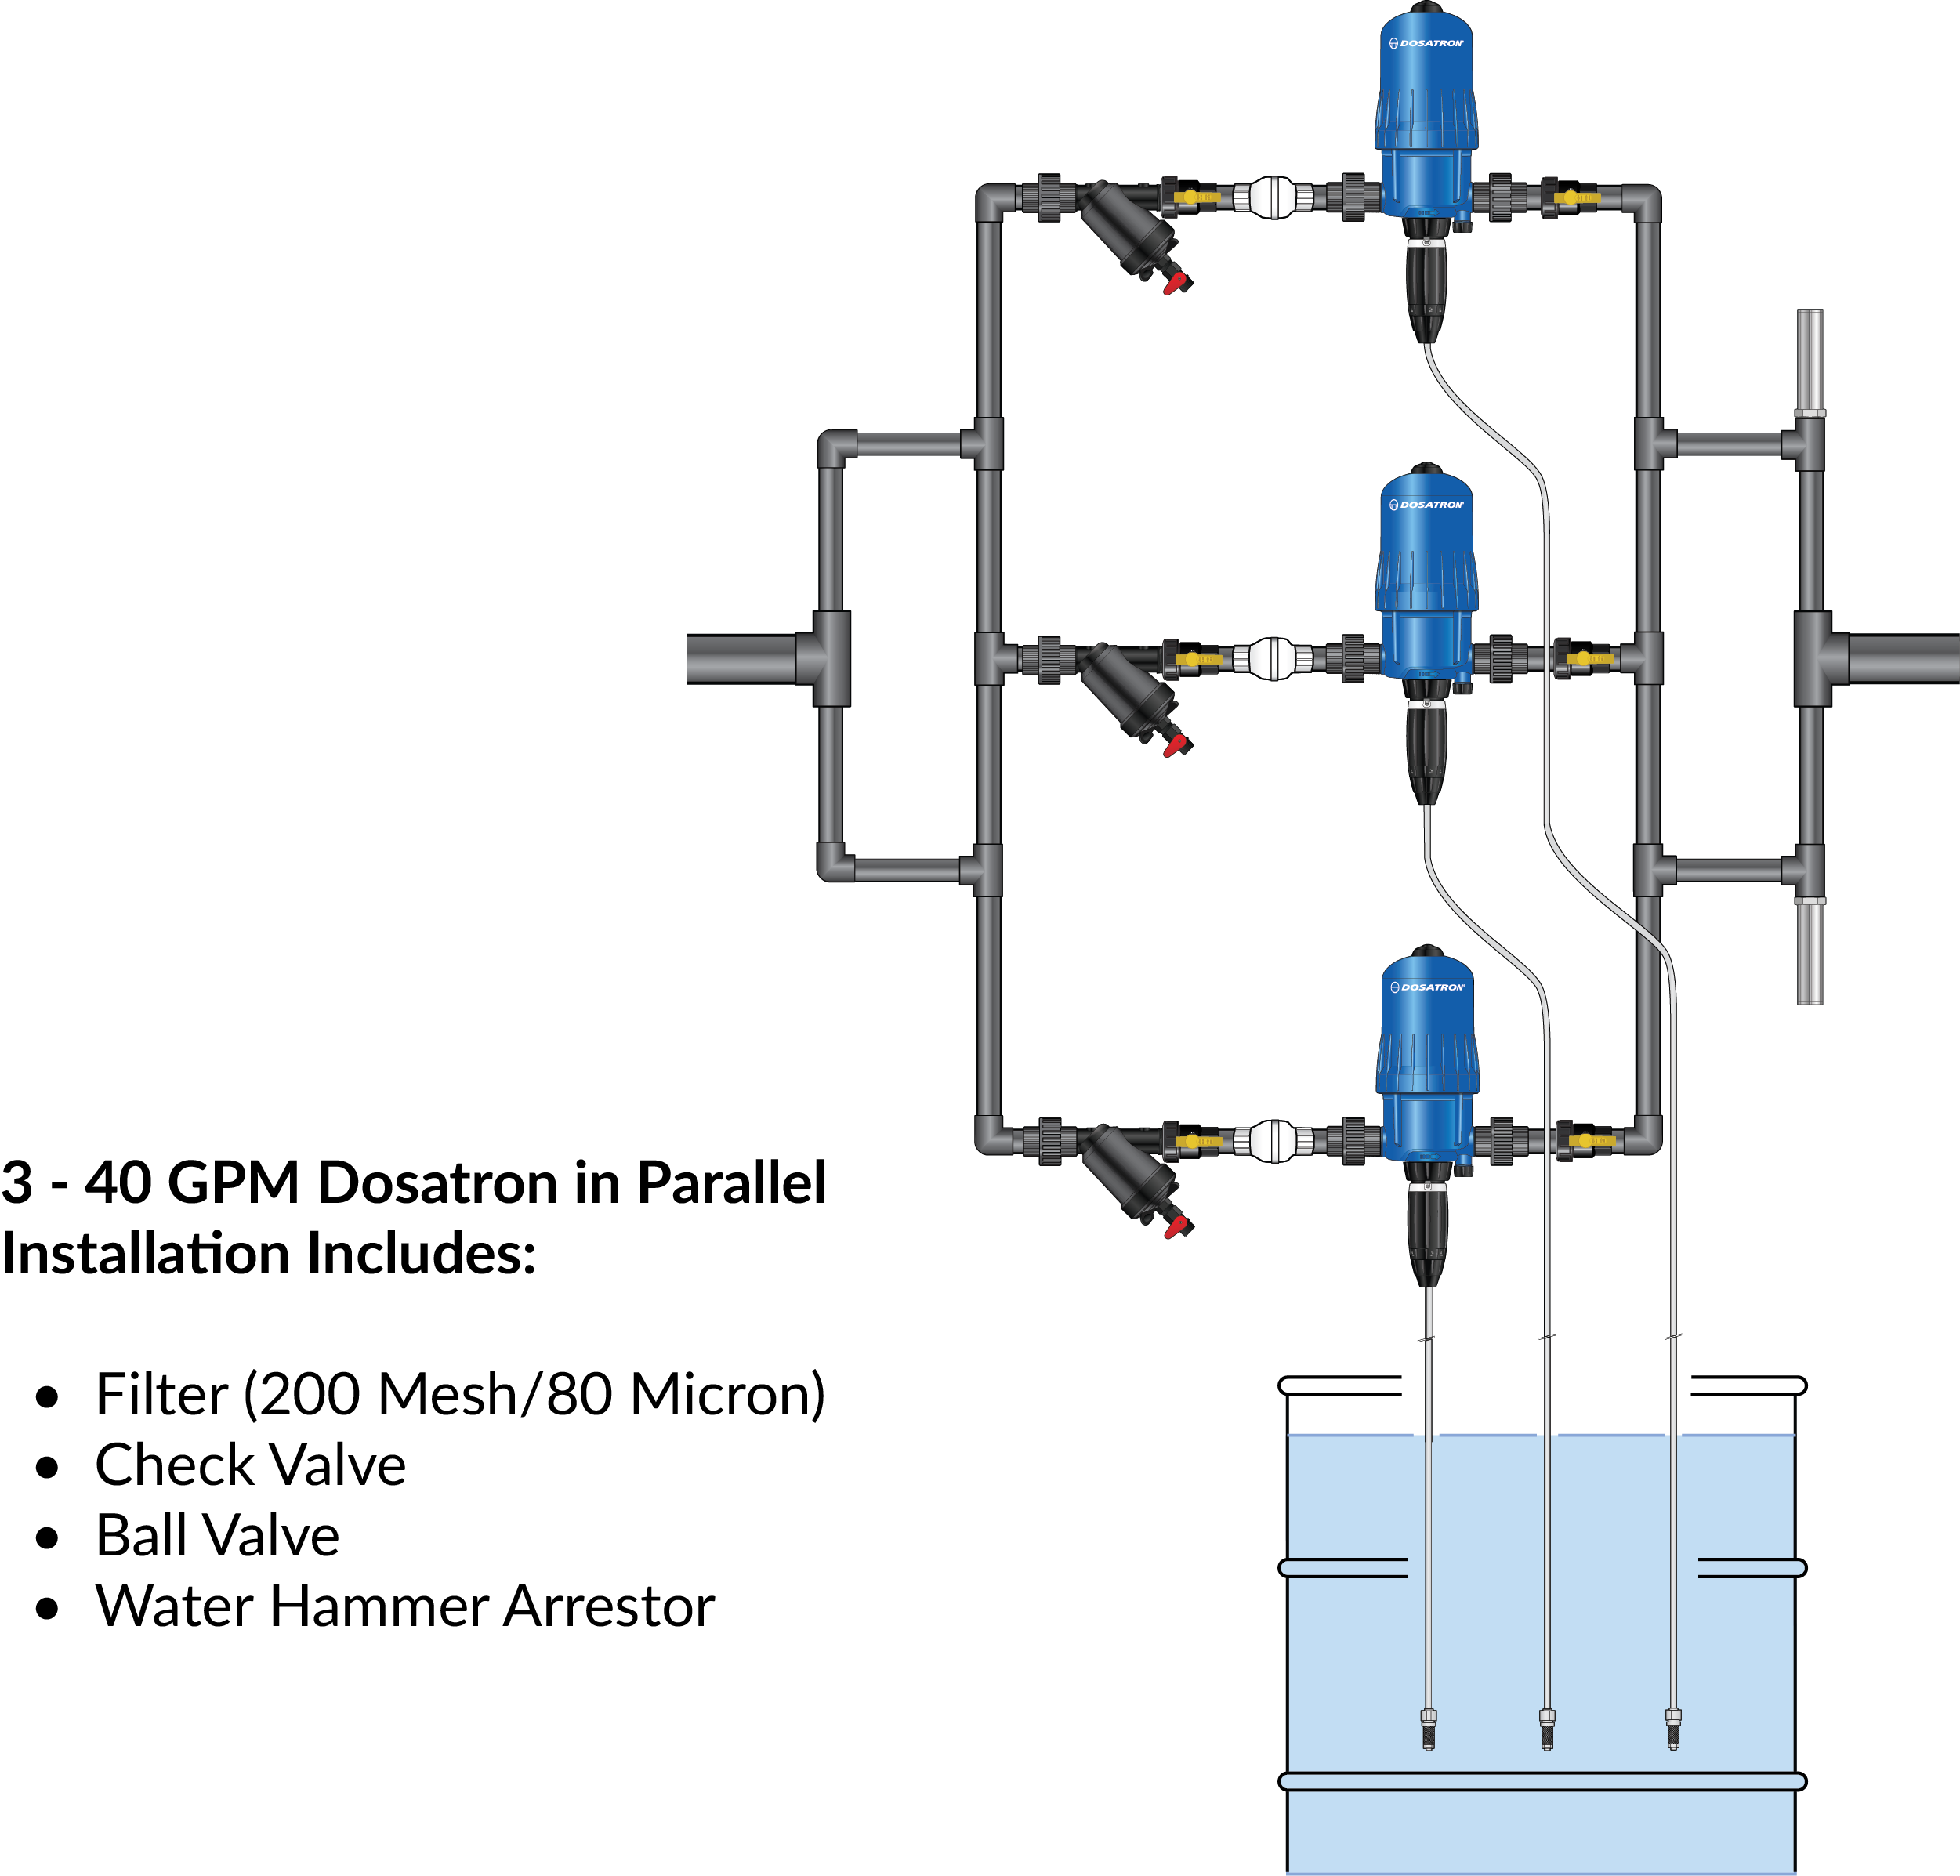 40GPM-units-in-parallel-Hort